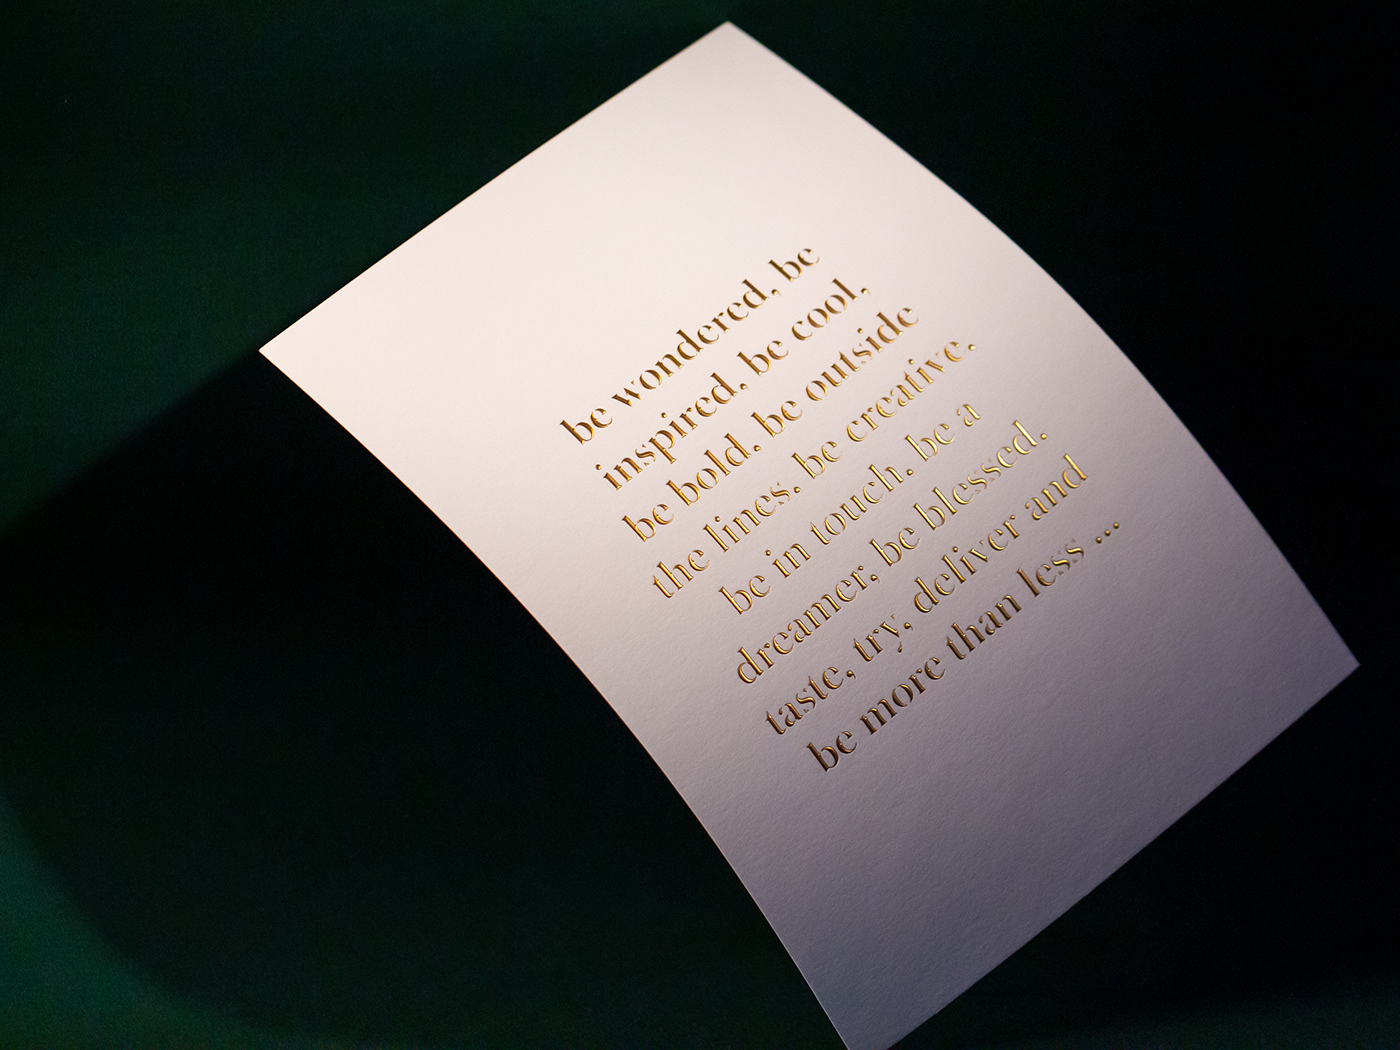 Corporate Identity cotton paper emboss gmund greeting card hotfoil less is more mailing new year Quotes